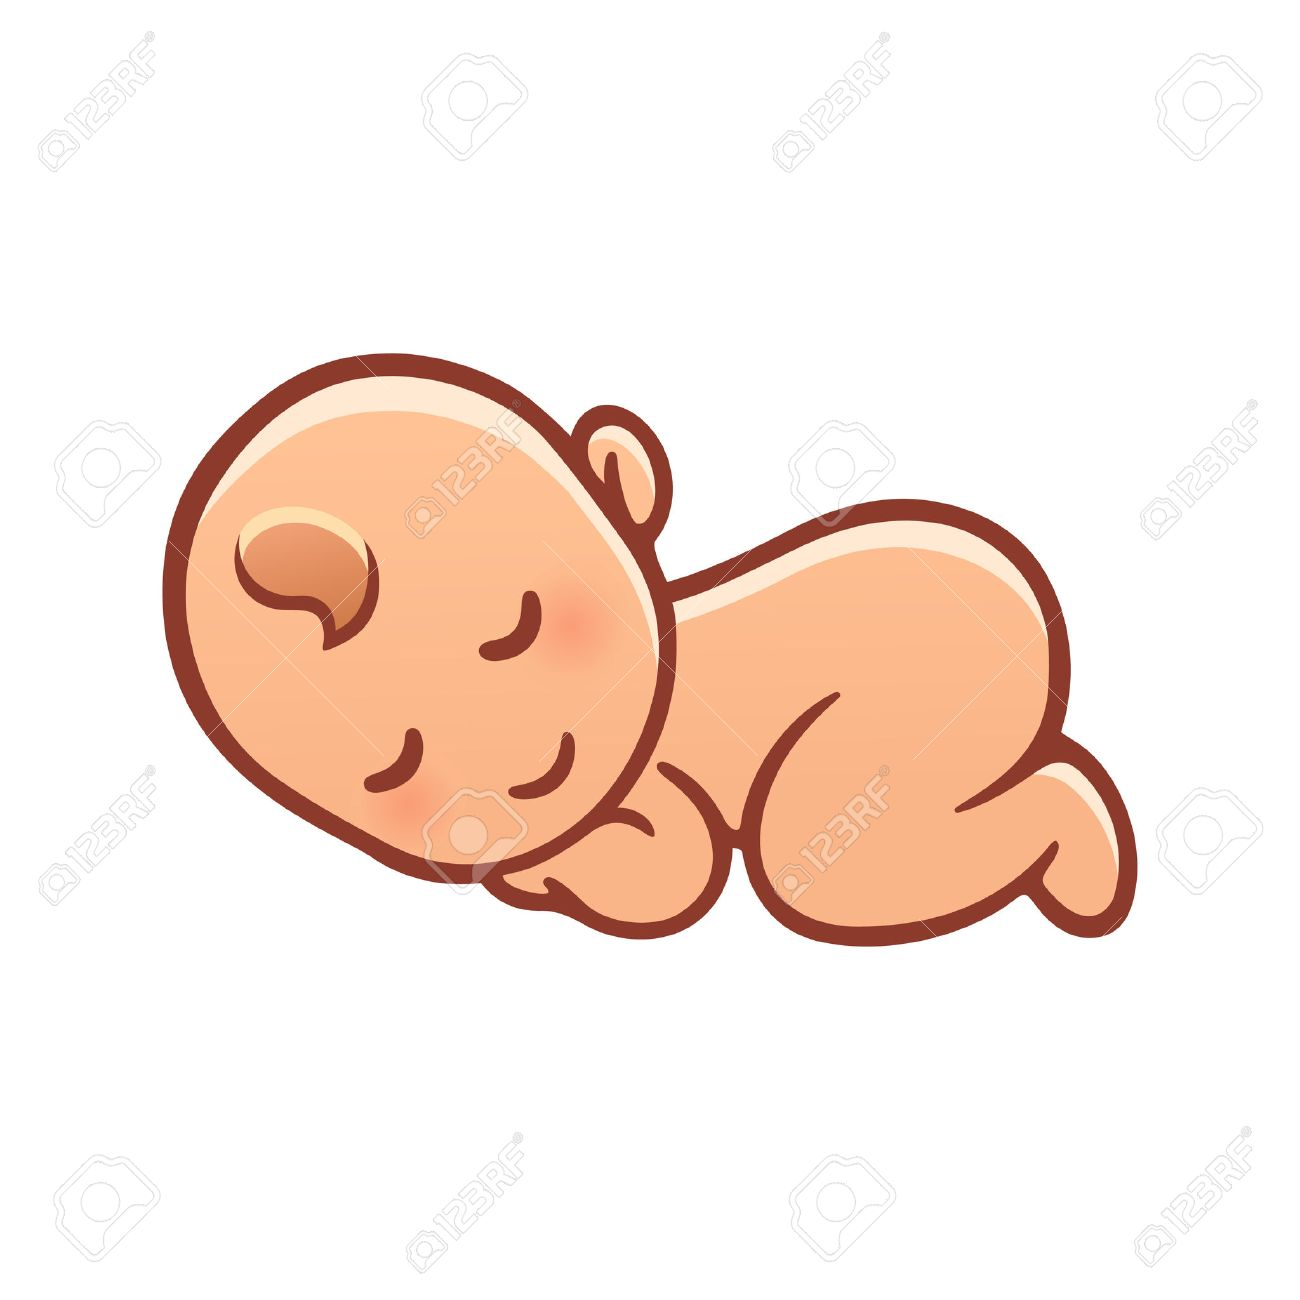 1300x1300 Cute Sleeping Baby Drawing. Simple Cartoon Vector Illustration